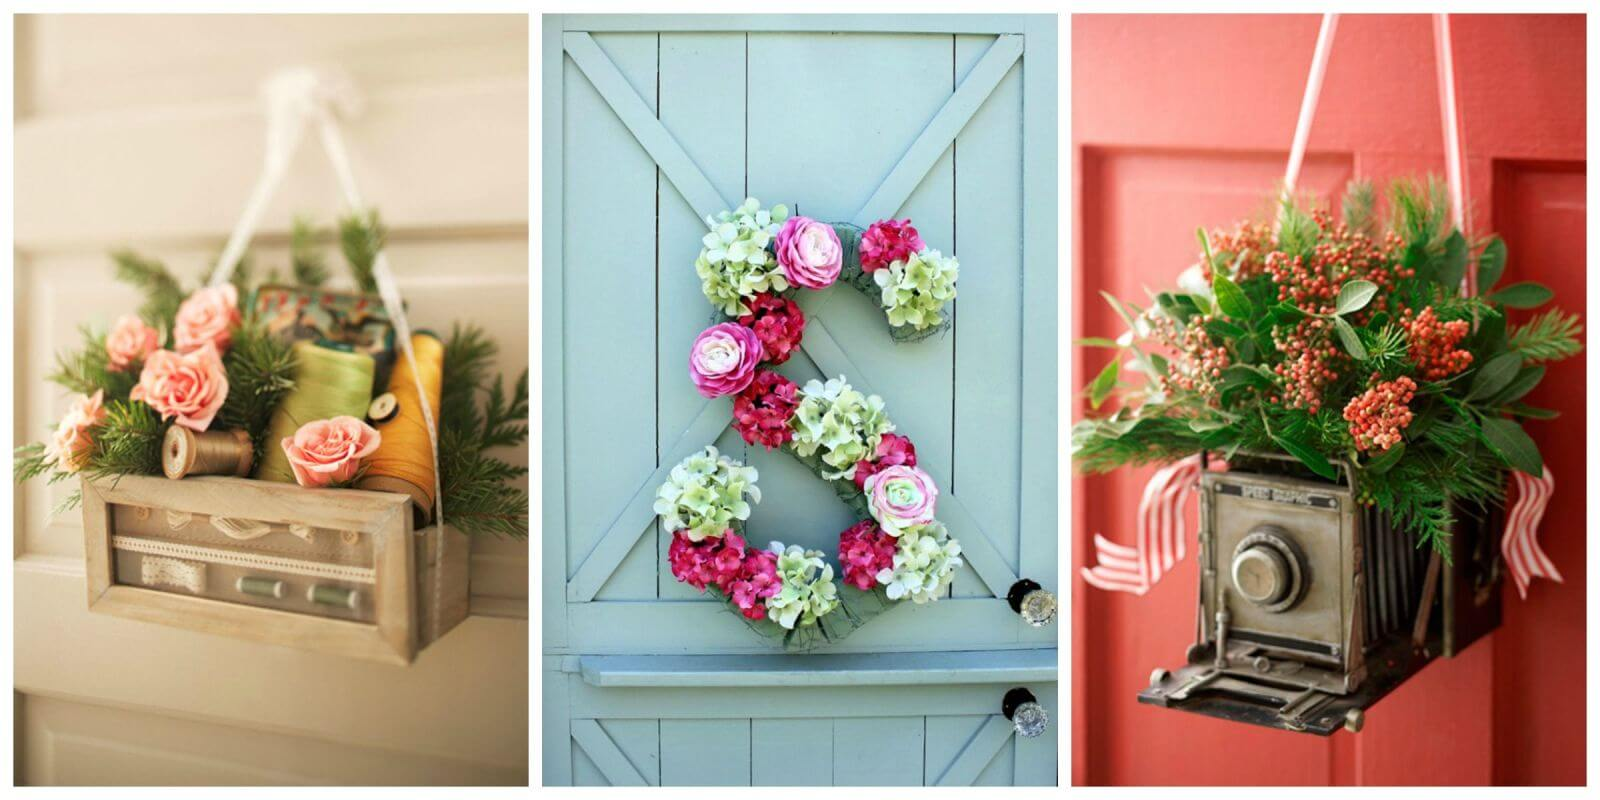 4 Exciting Spring DIY Projects for Your Home's Exterior